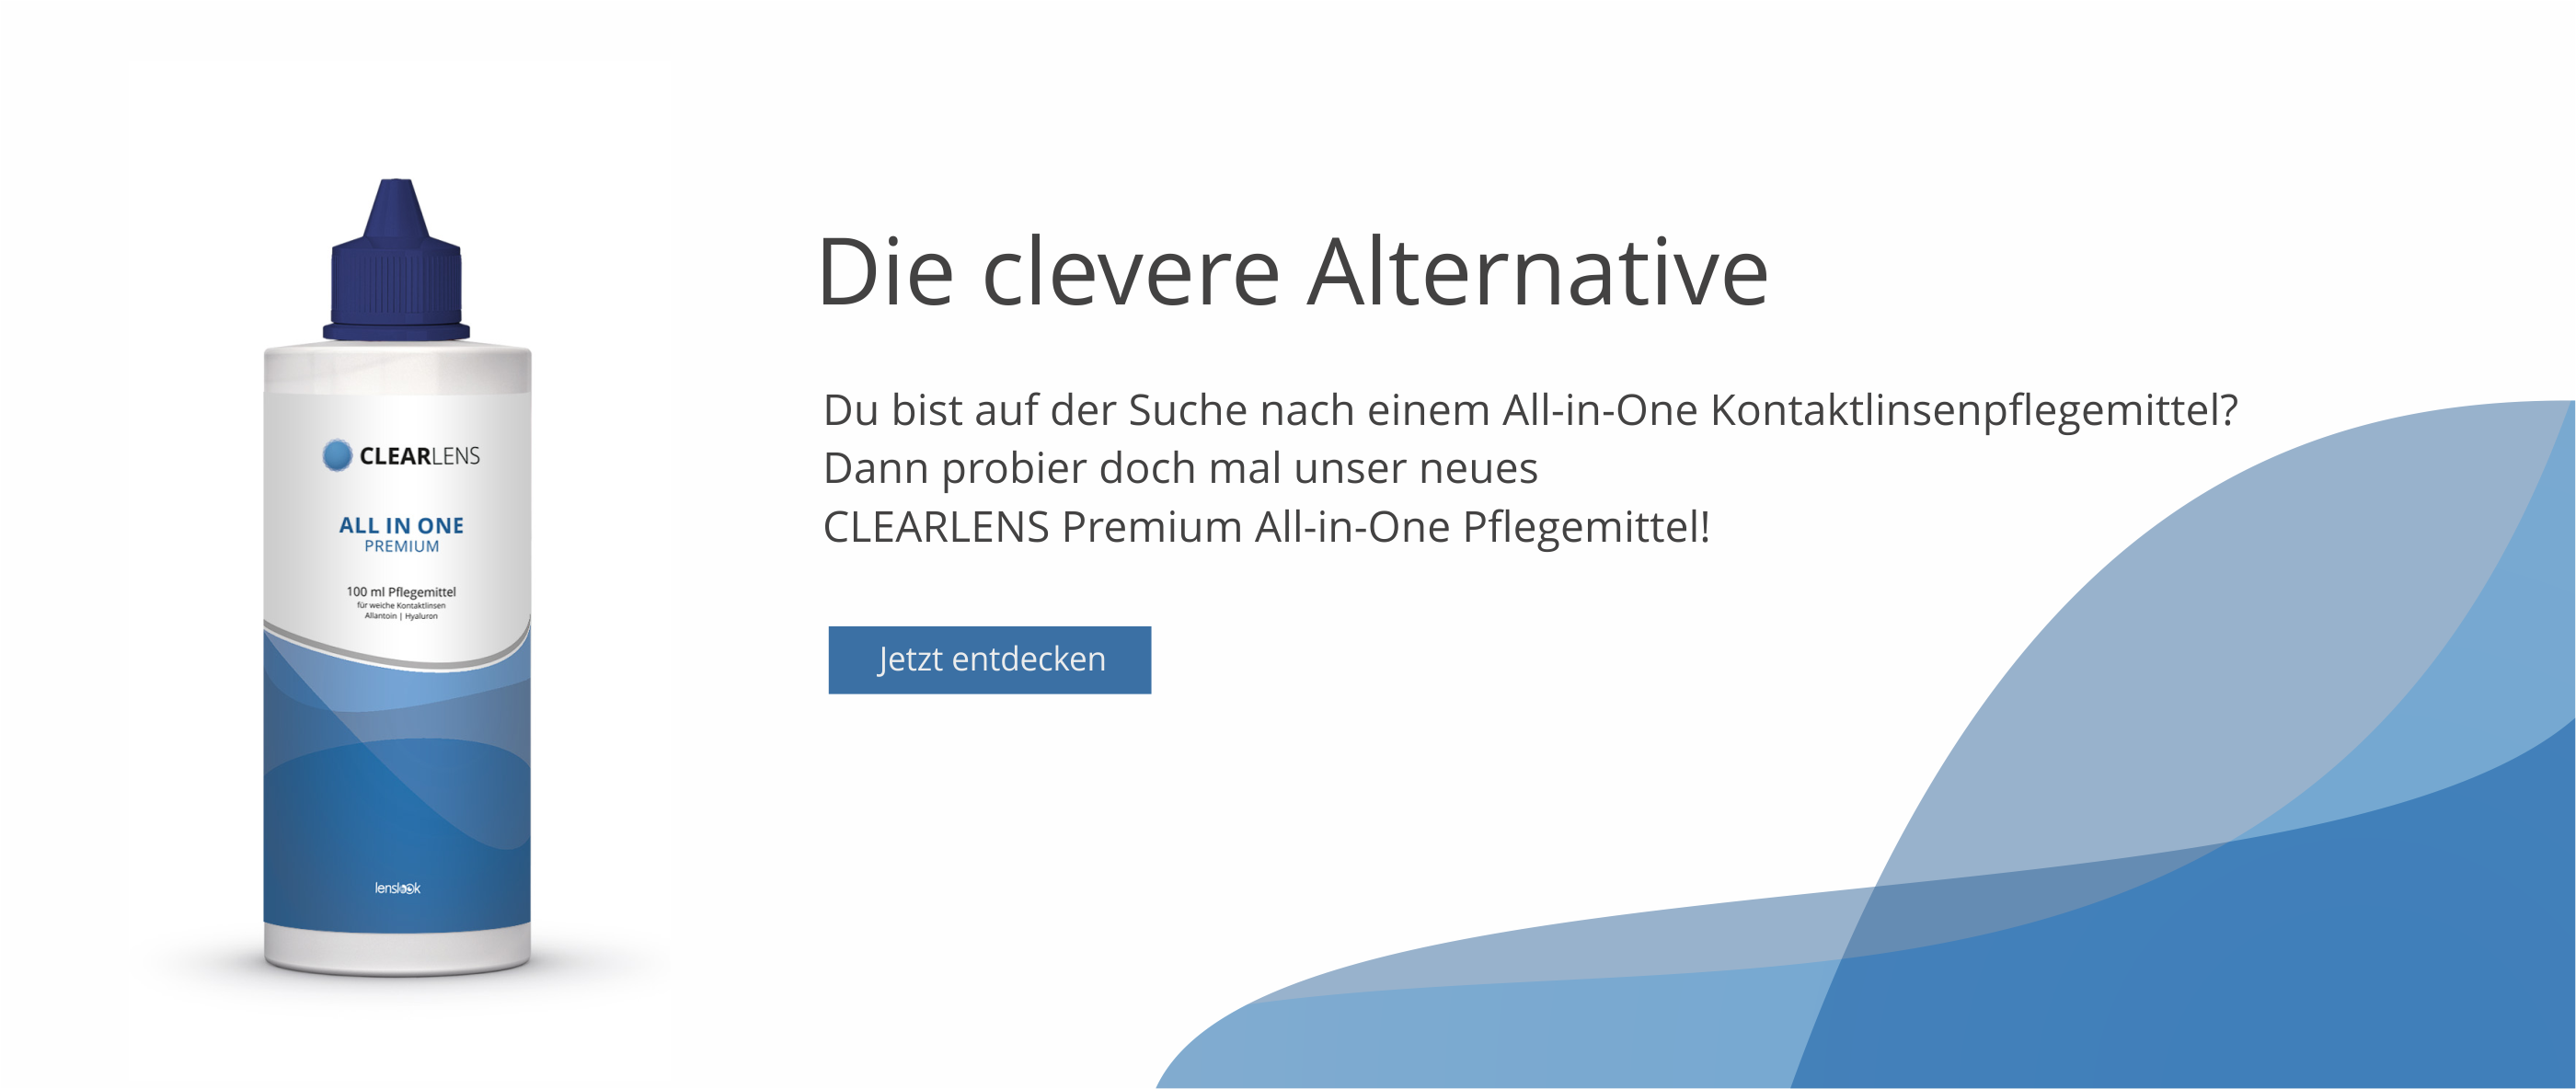 ClearLens_Alternative_100ml